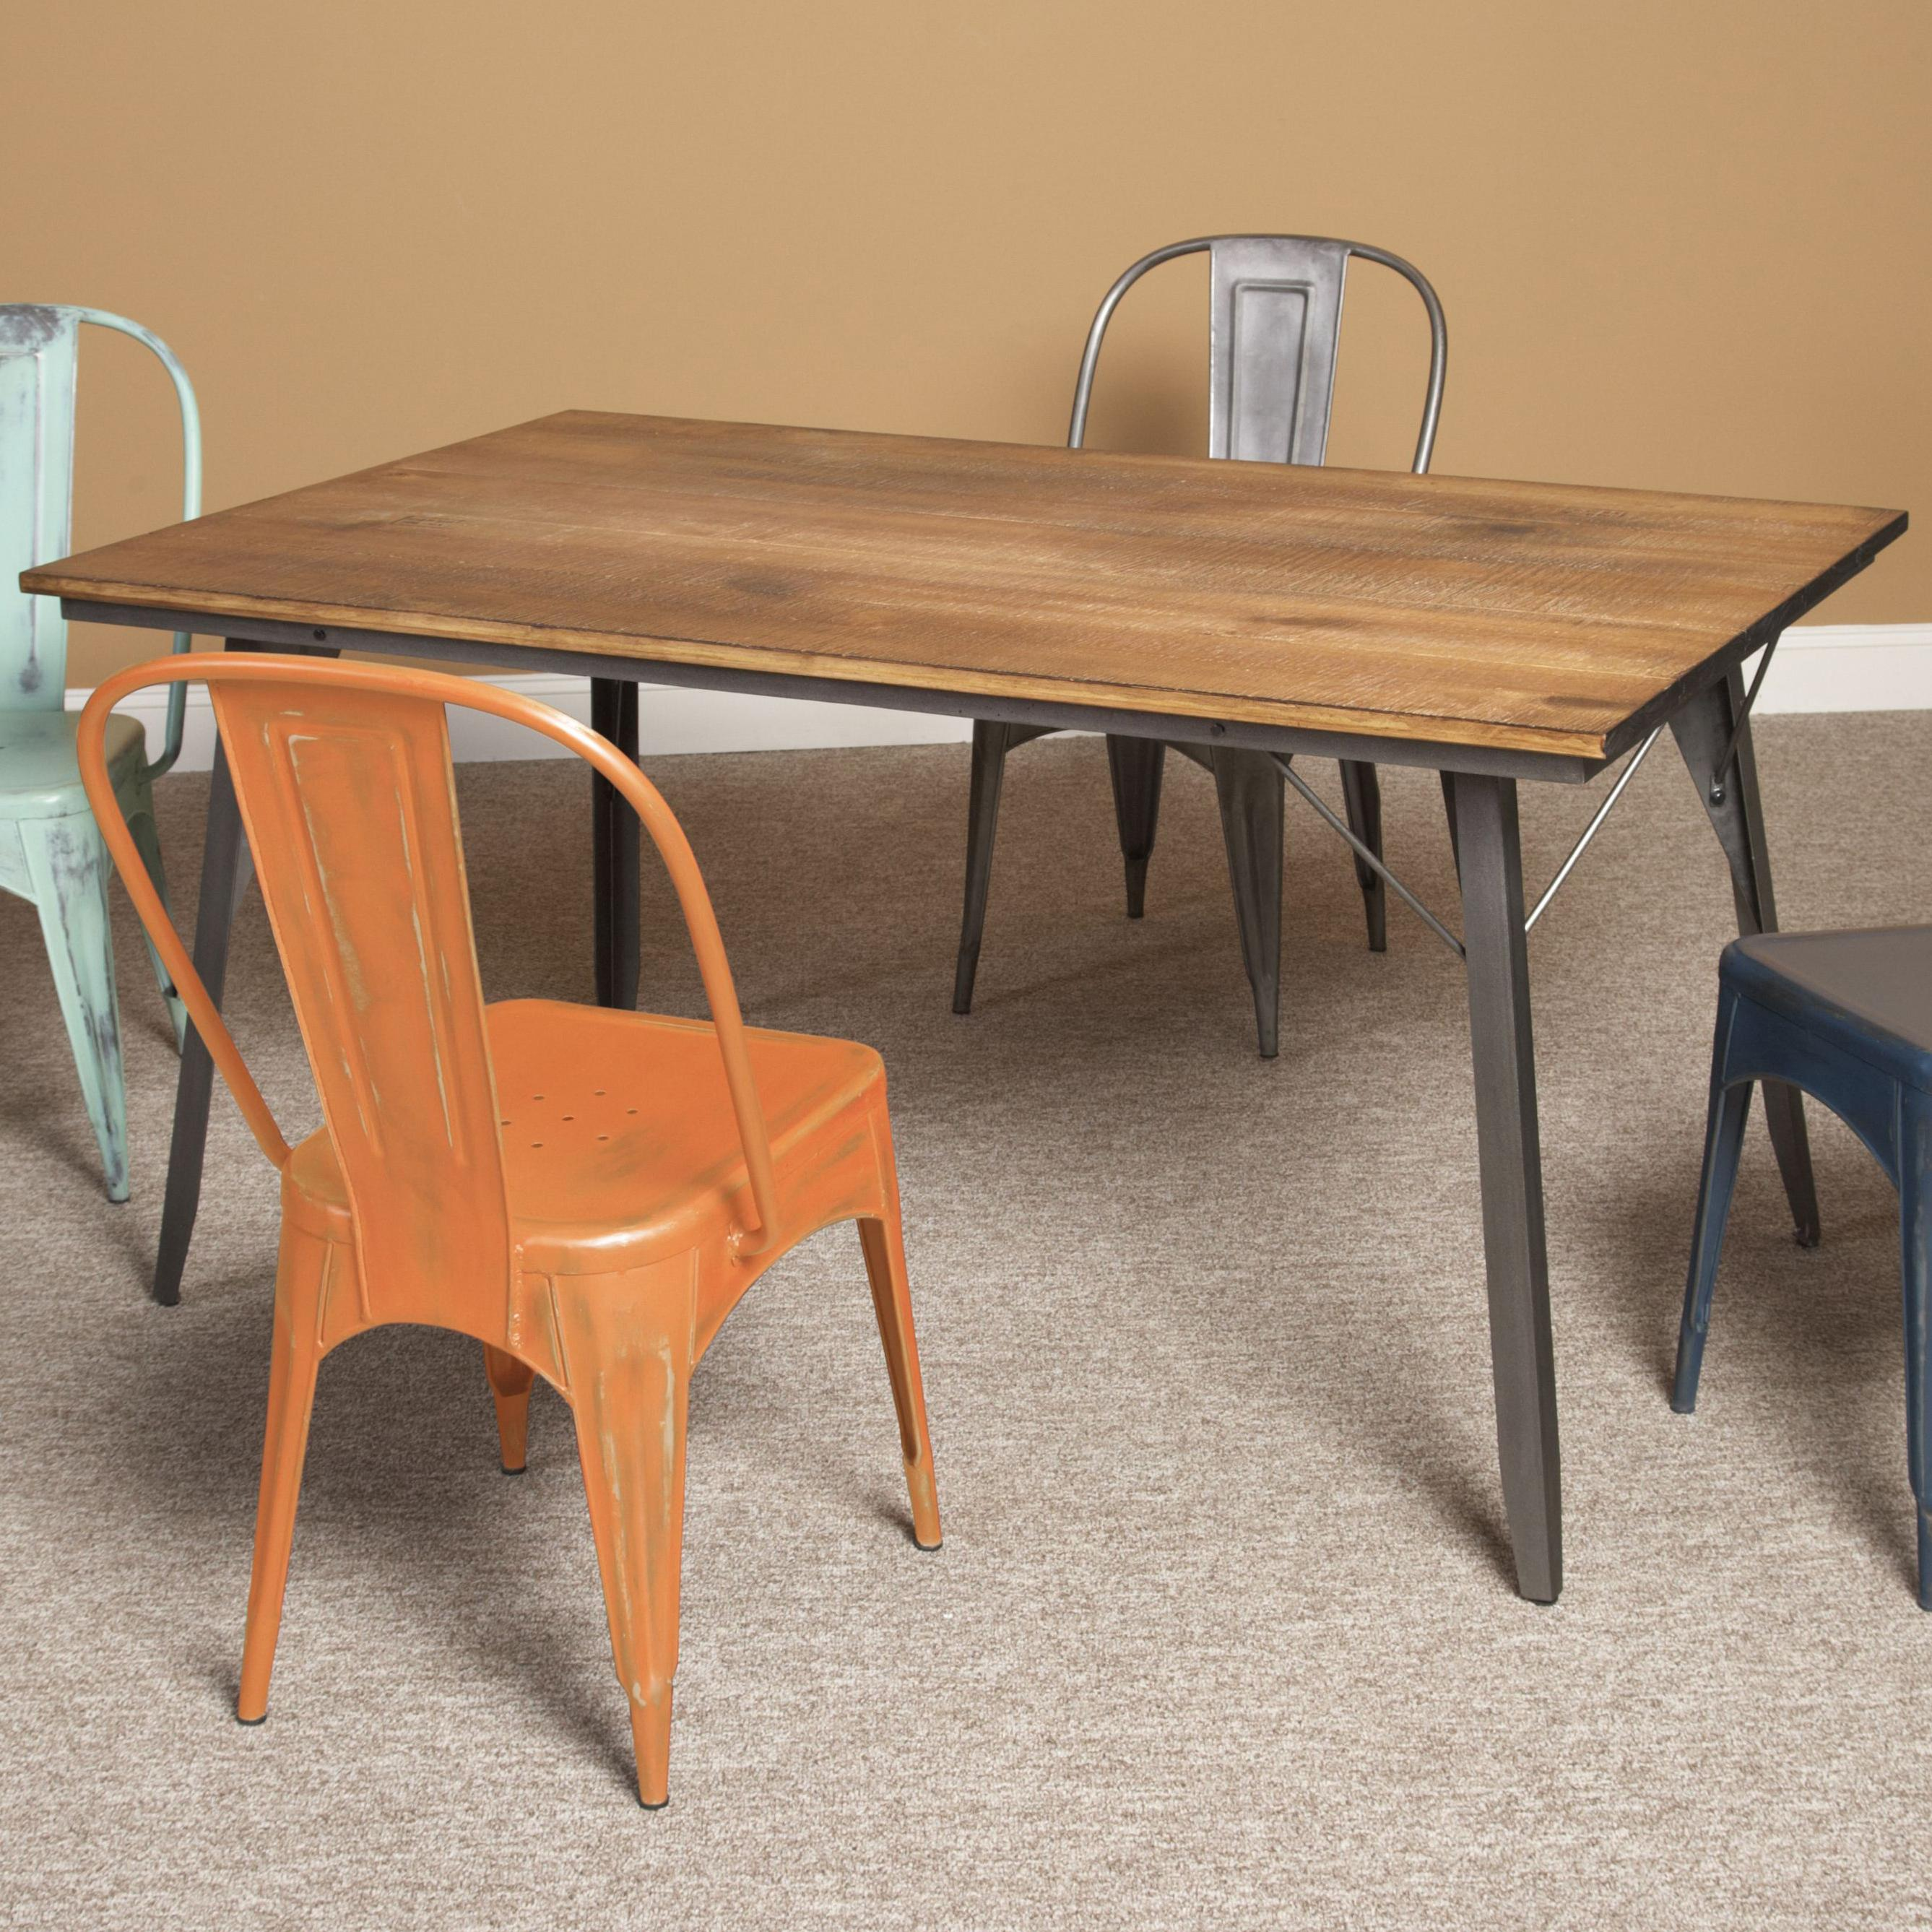 wooden kitchen table Wood Metal Rectangular Dining Table